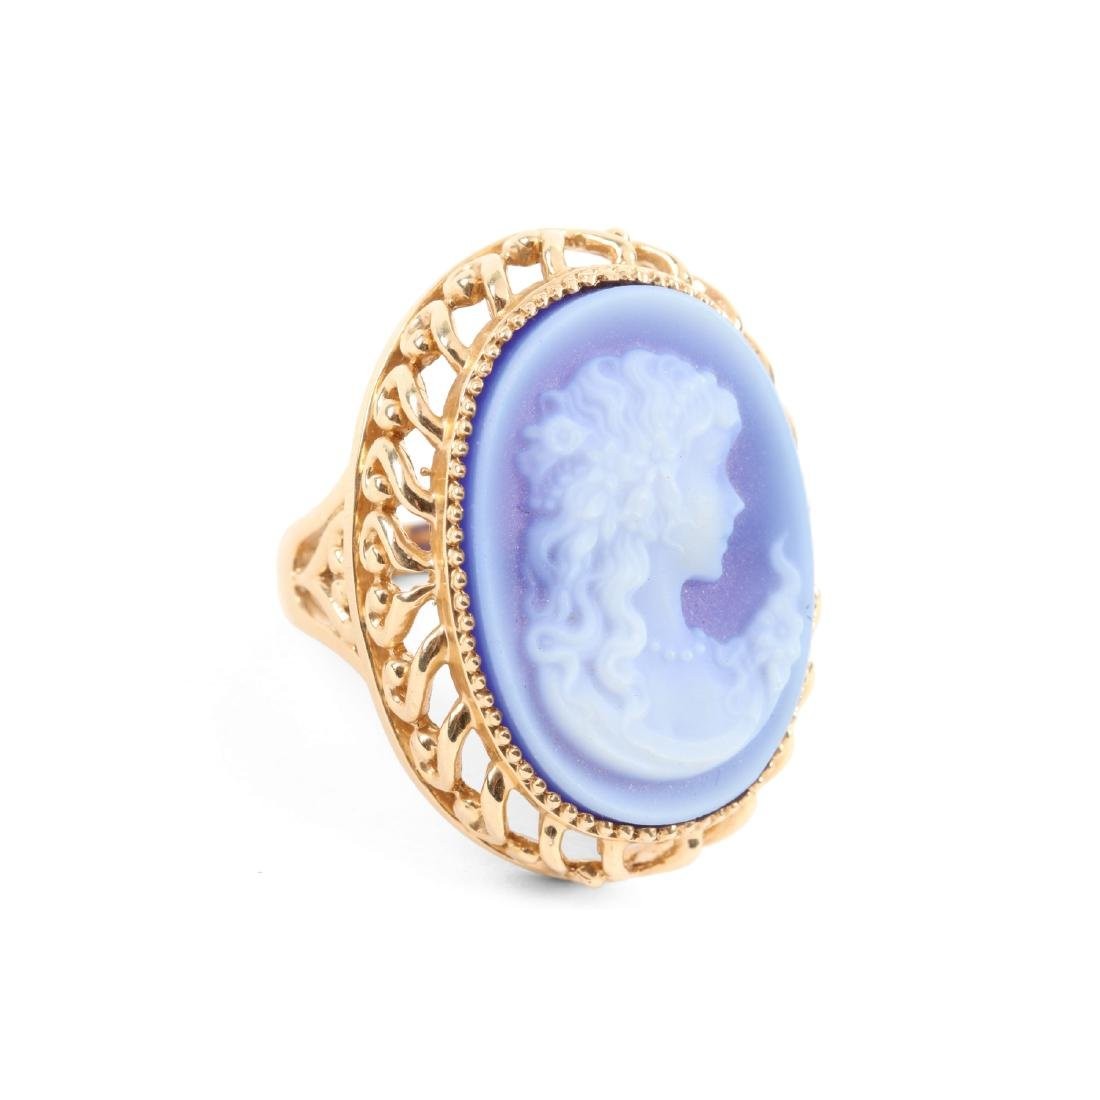 A 14K Gold & Onyx Cameo Ring